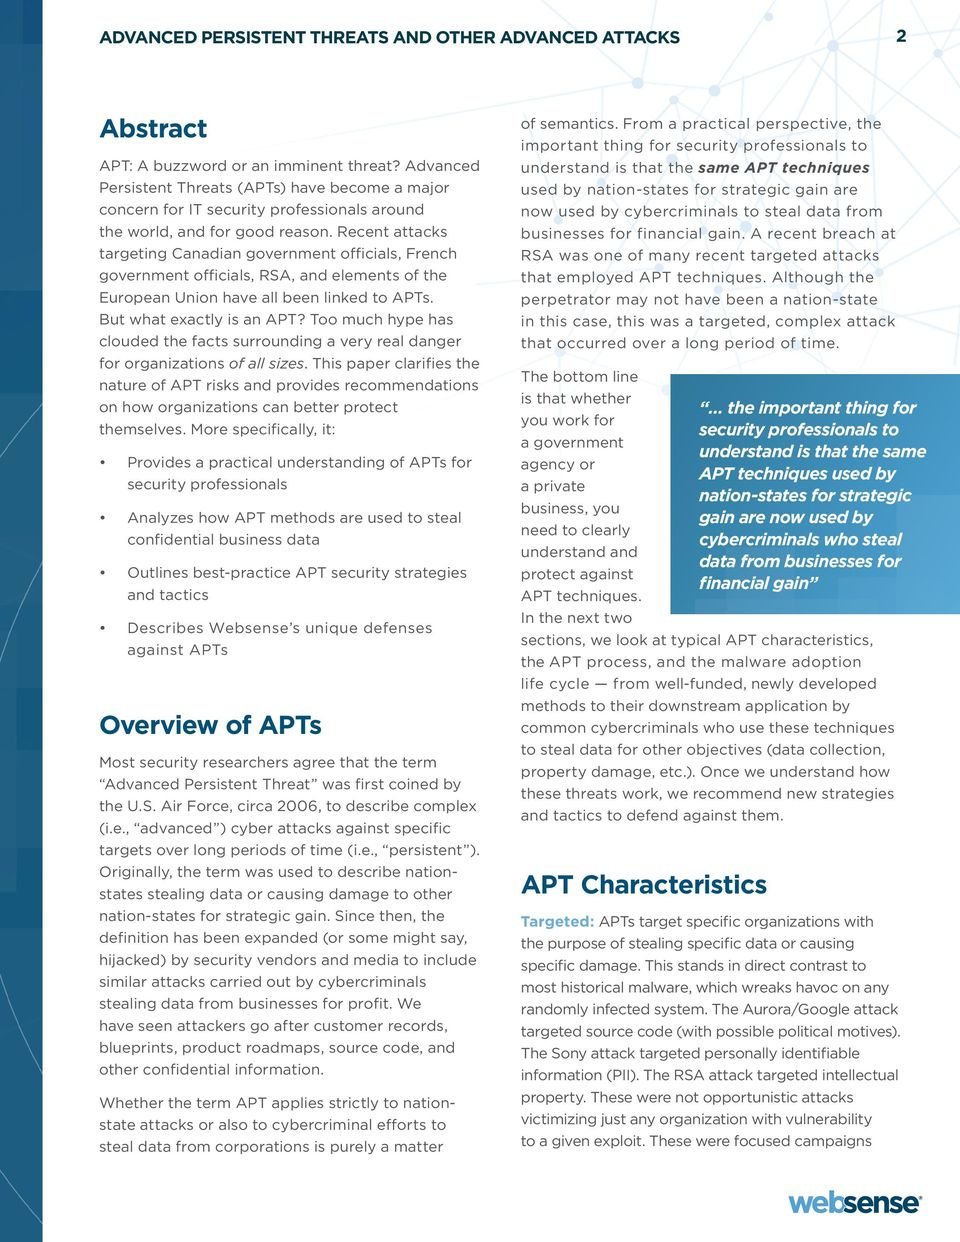 Recent attacks targeting Canadian government officials, French government officials, RSA, and elements of the European Union have all been linked to APTs. But what exactly is an APT?